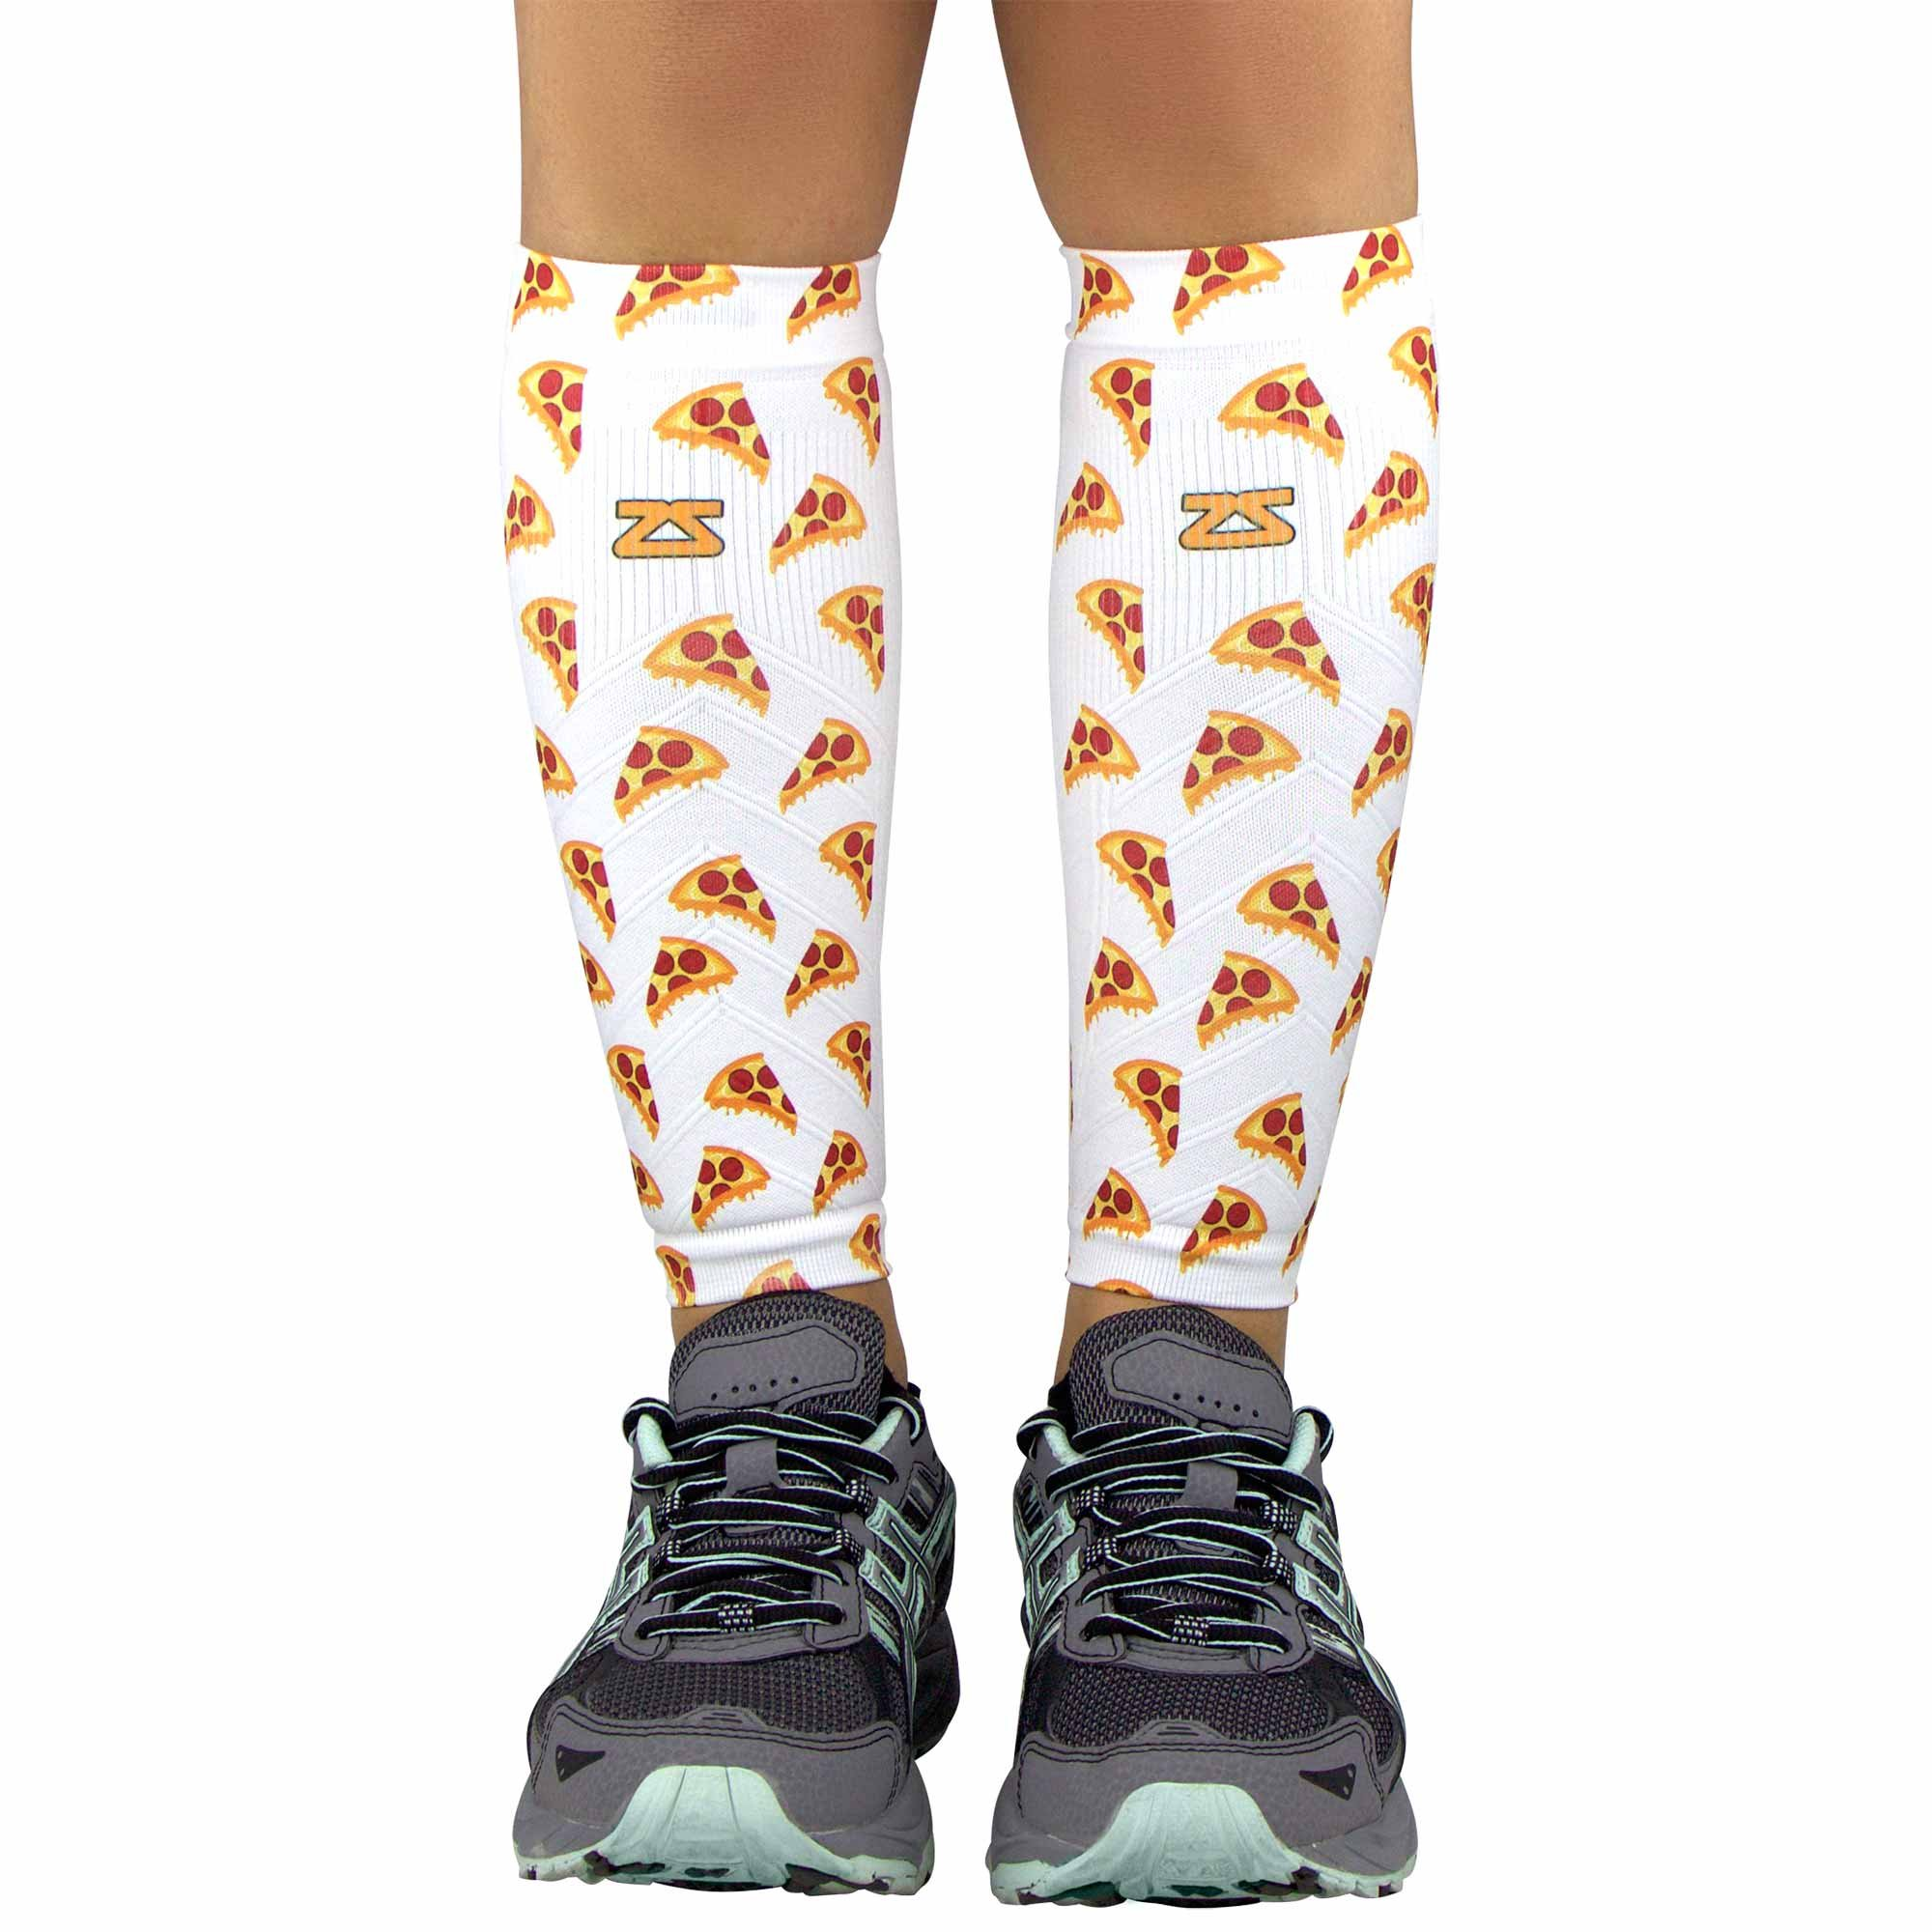 Zensah Compression Leg Sleeves - Helps Shin Splints, Leg Sleeves for Running (X-Small/Small, Pizza Slices-White)